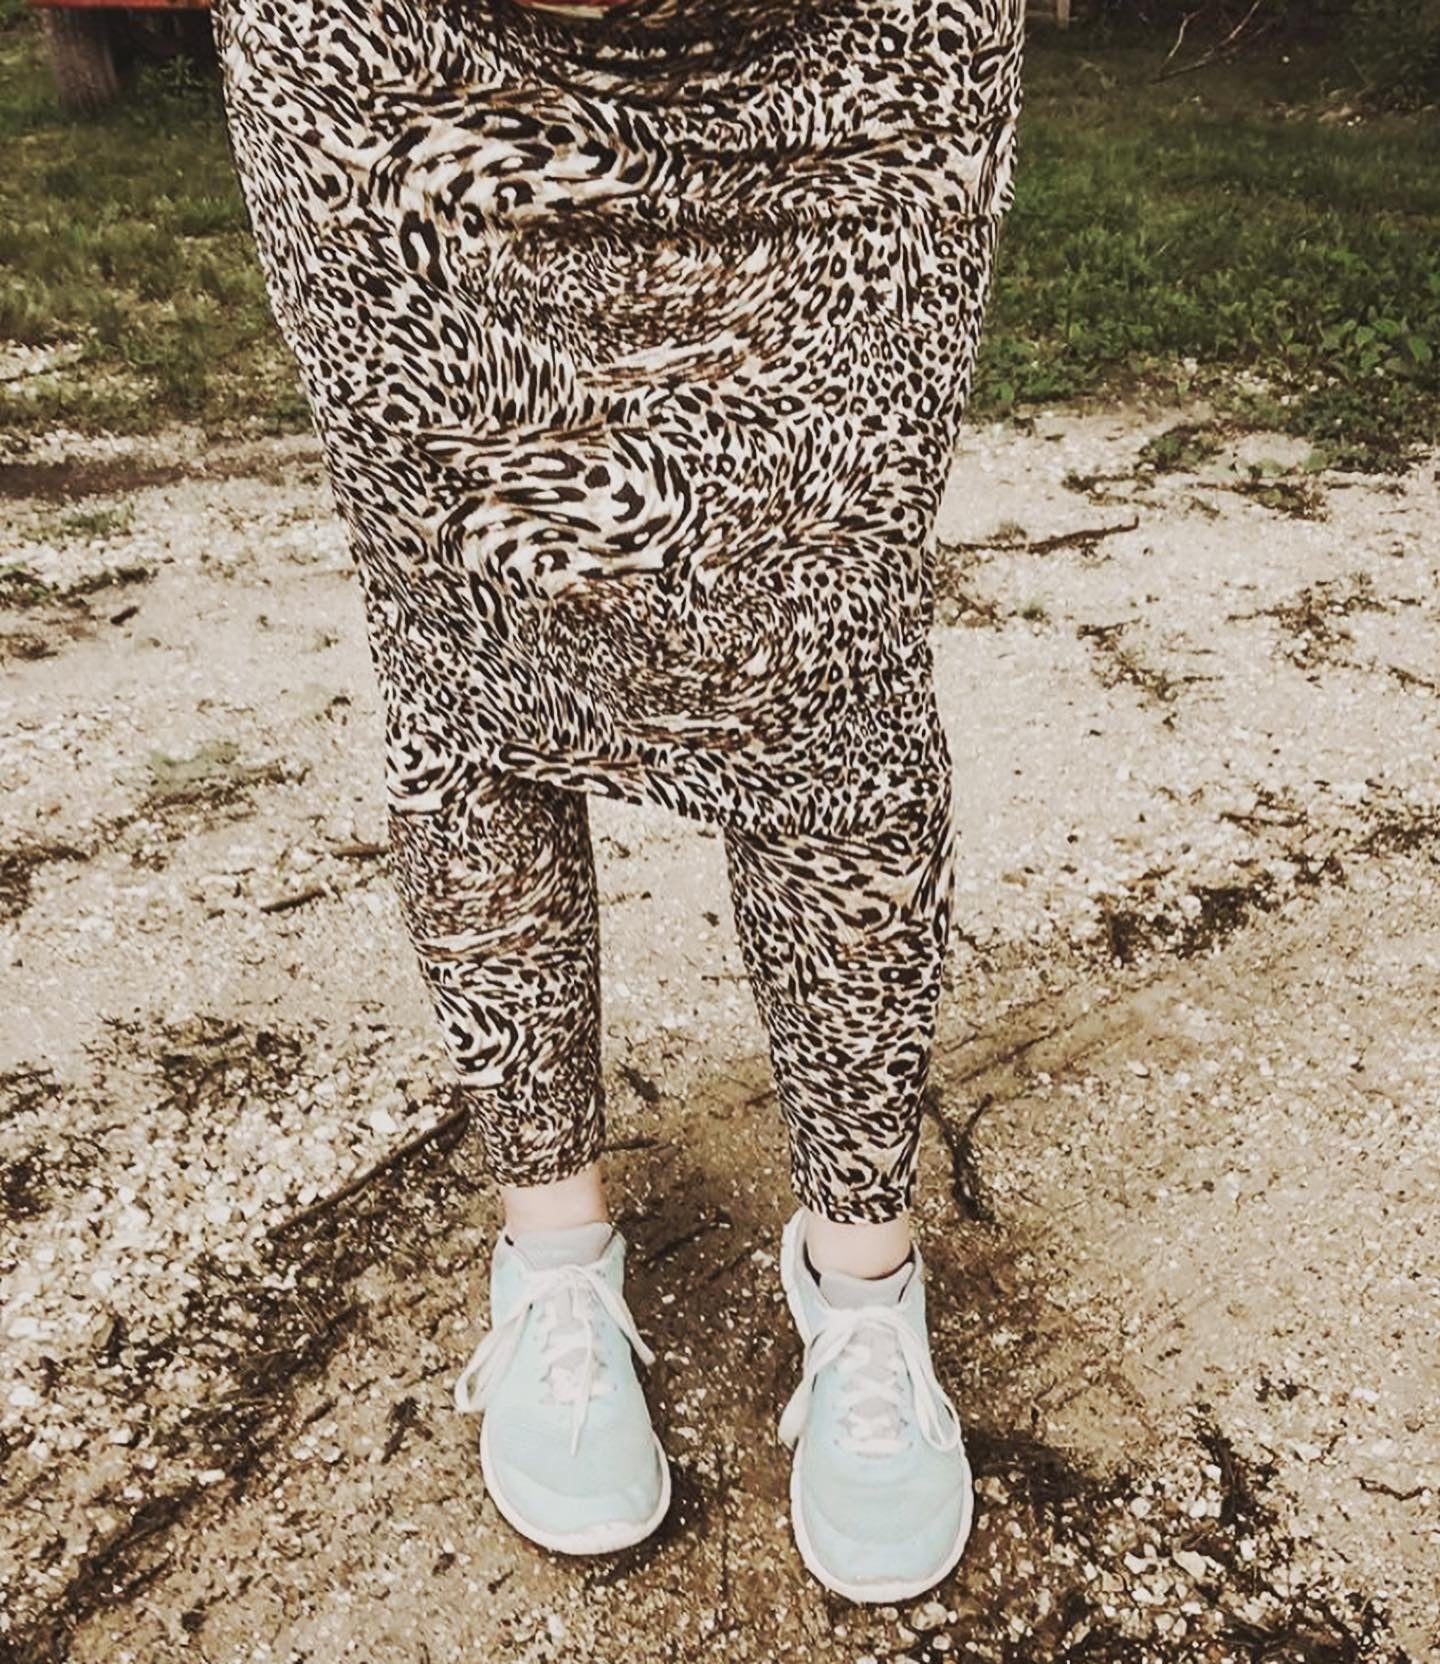 Leopard Print Athletic/Swim Skirt with Ankle Length Leggings